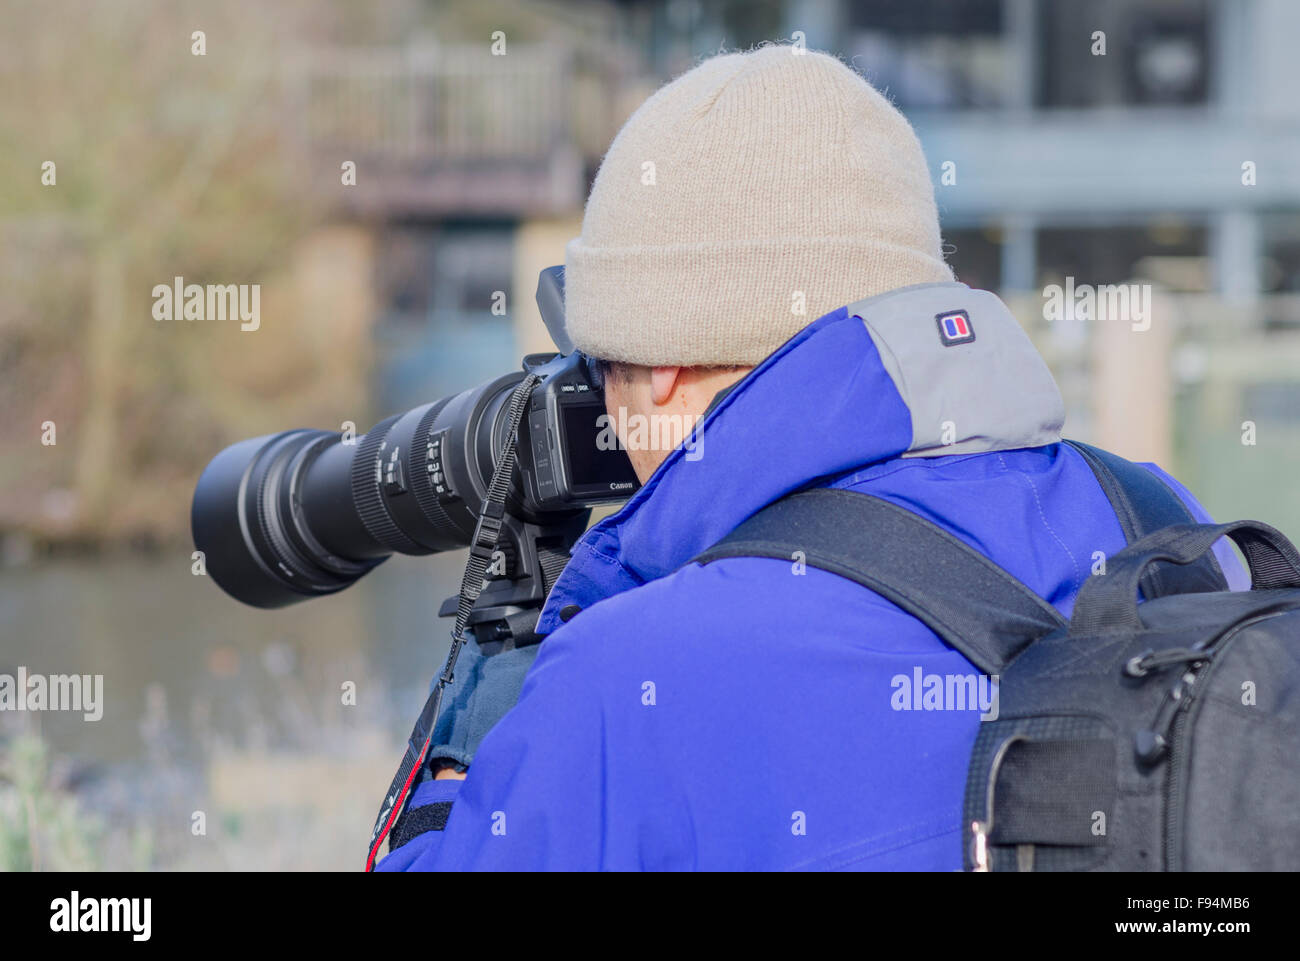 Male photographer with a long telephoto lens. - Stock Image